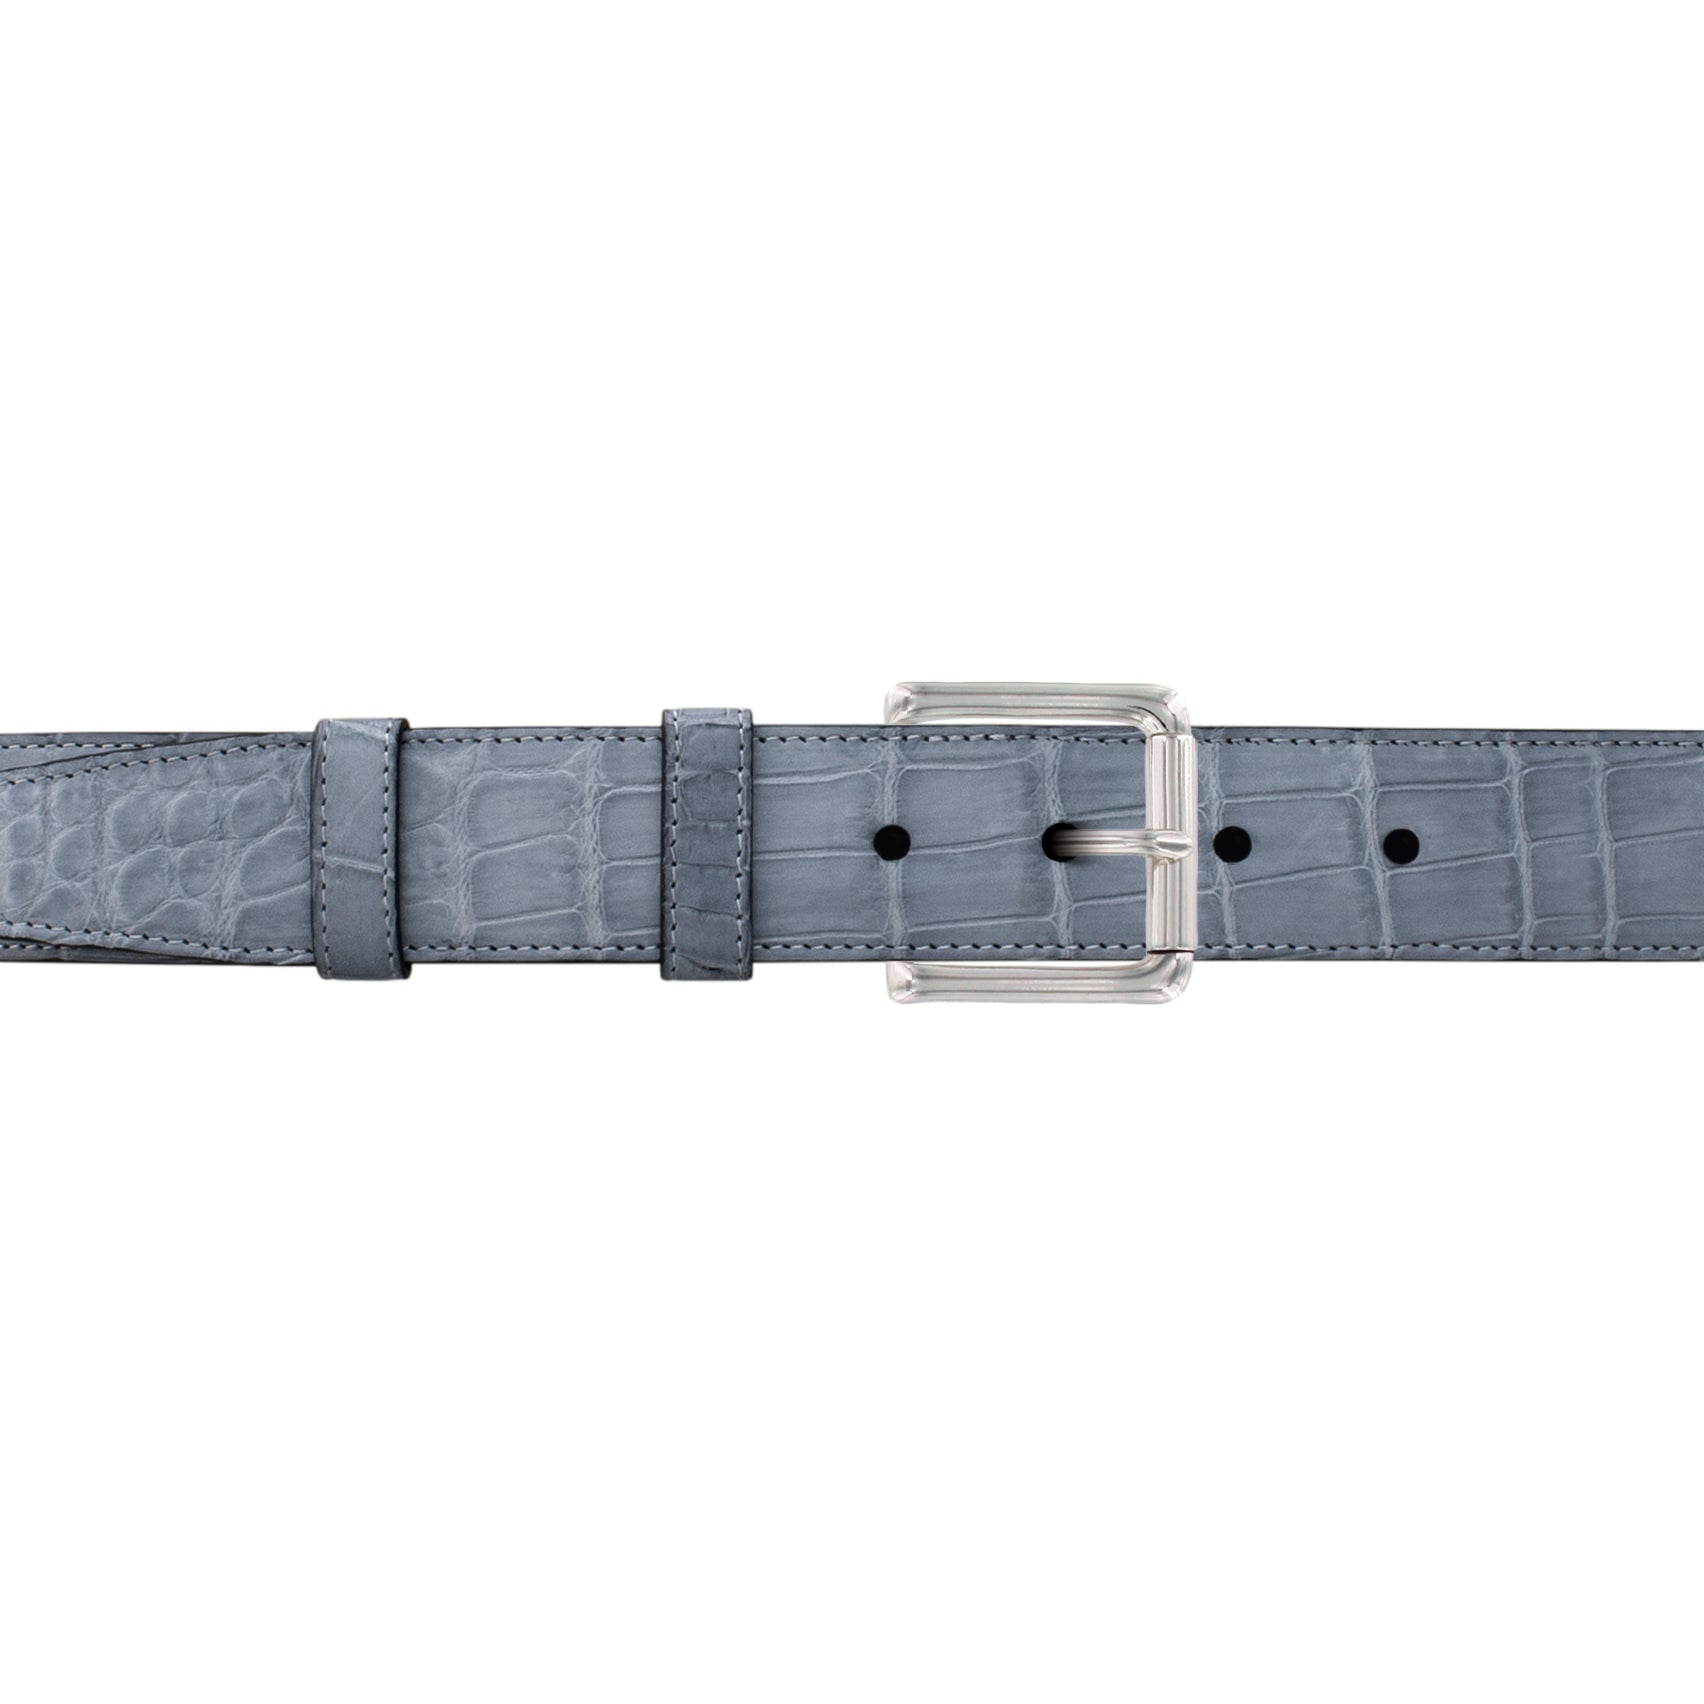 "1 1/4"" Slate Seasonal Belt with Austin Casual Buckle in Polished Nickel"